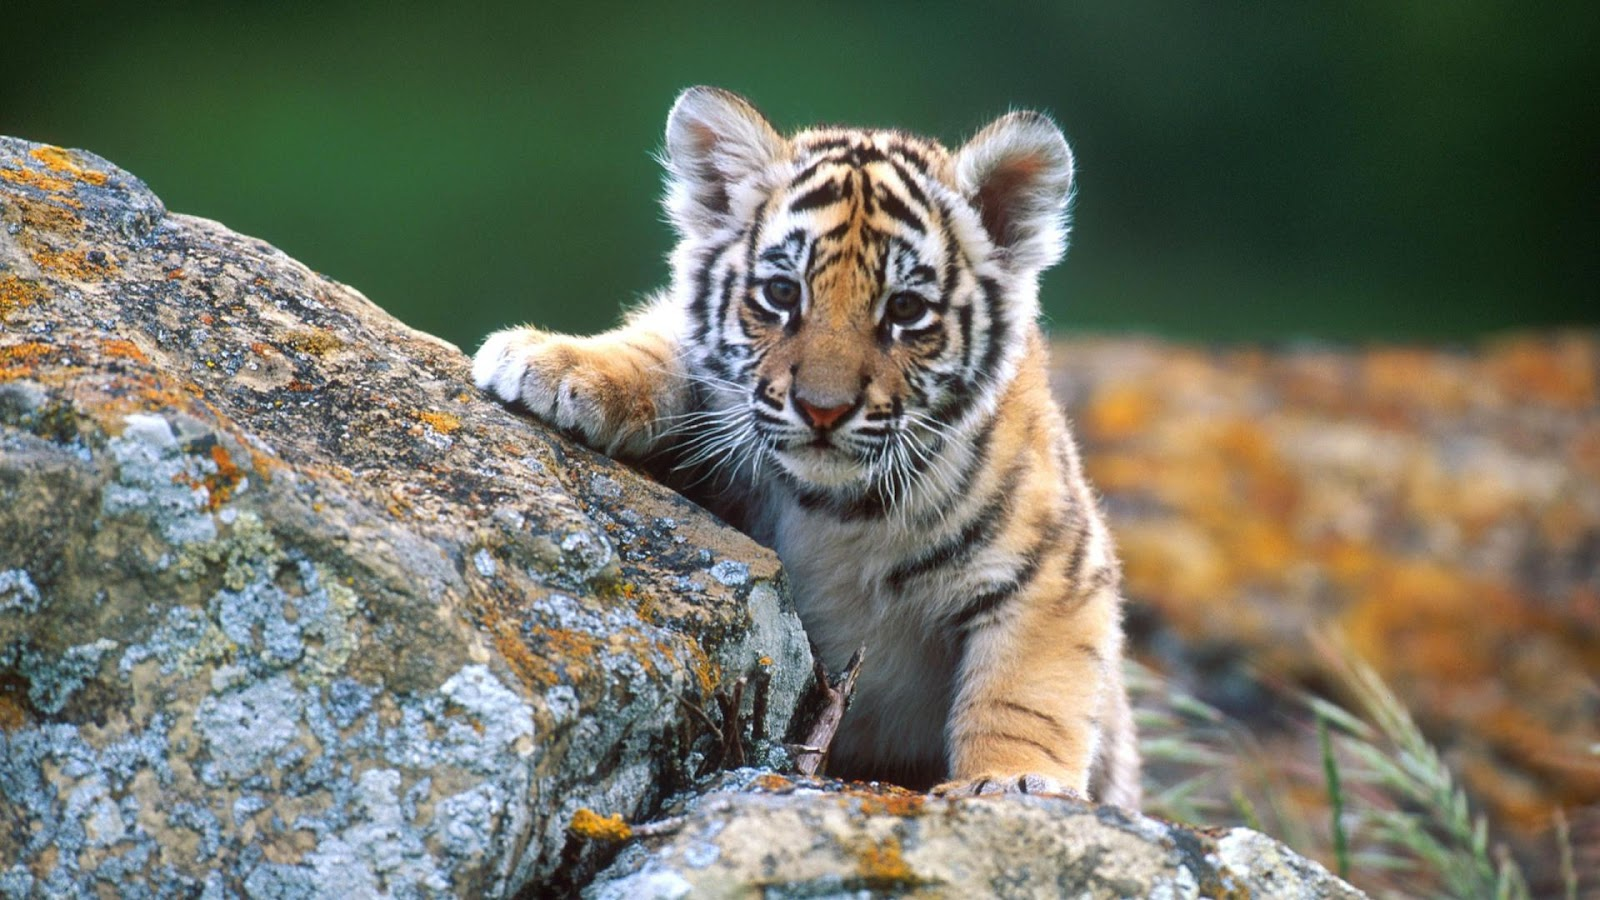 baby animal wallpaper 1 baby animal wallpaper 2 baby animal wallpaper 1600x900